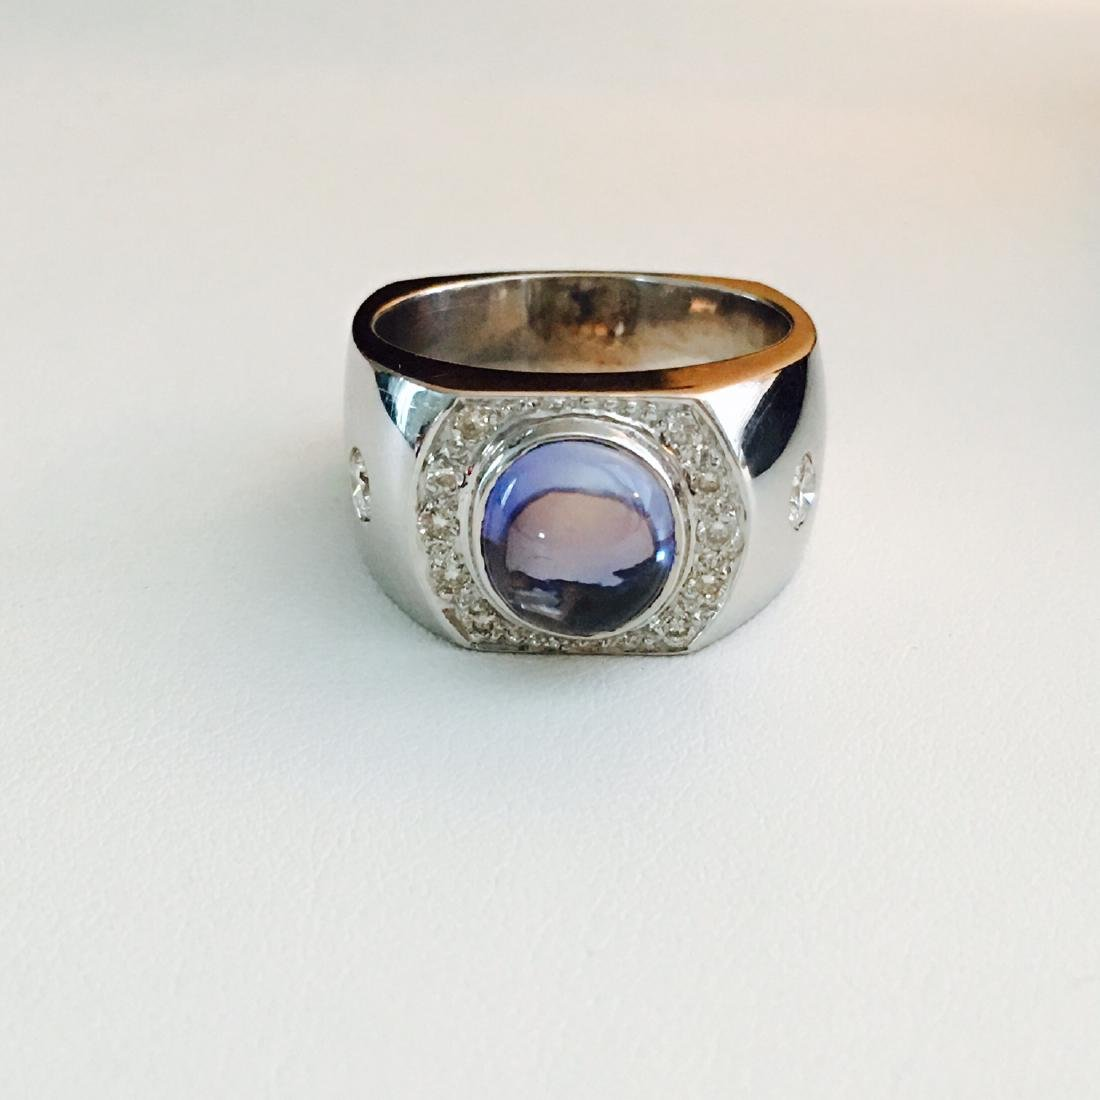 3.50 CT Blue Sapphire, VVS Diamonds in 18k gold ring.